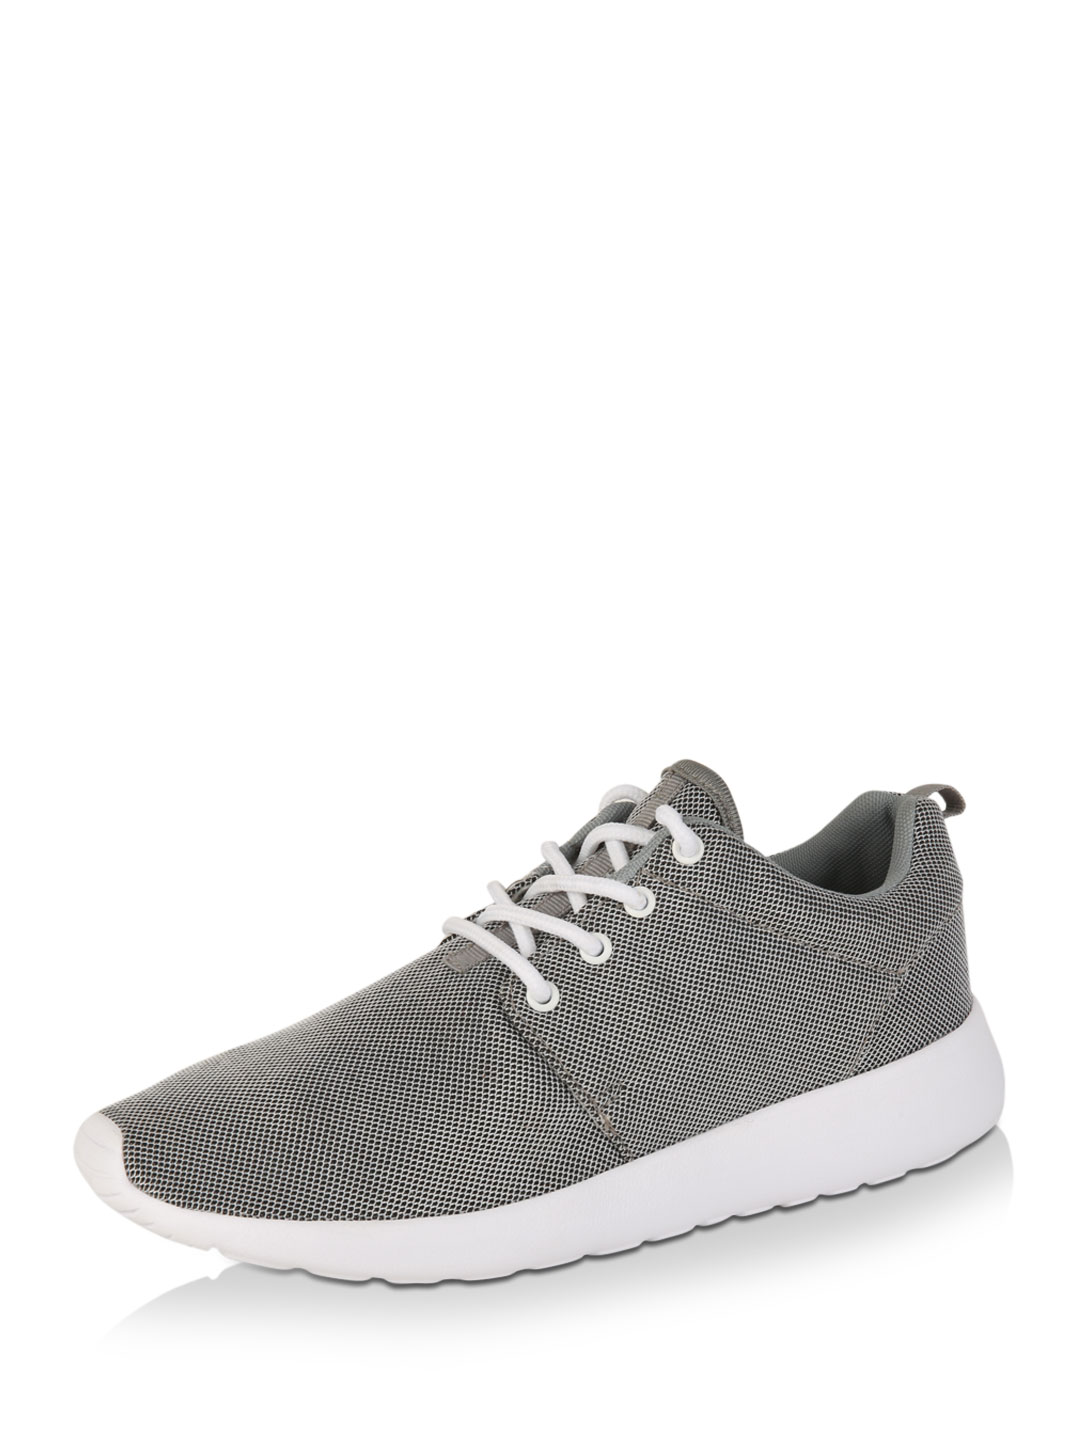 RUSHOUR Grey Two-Tone Knit Trainers 1